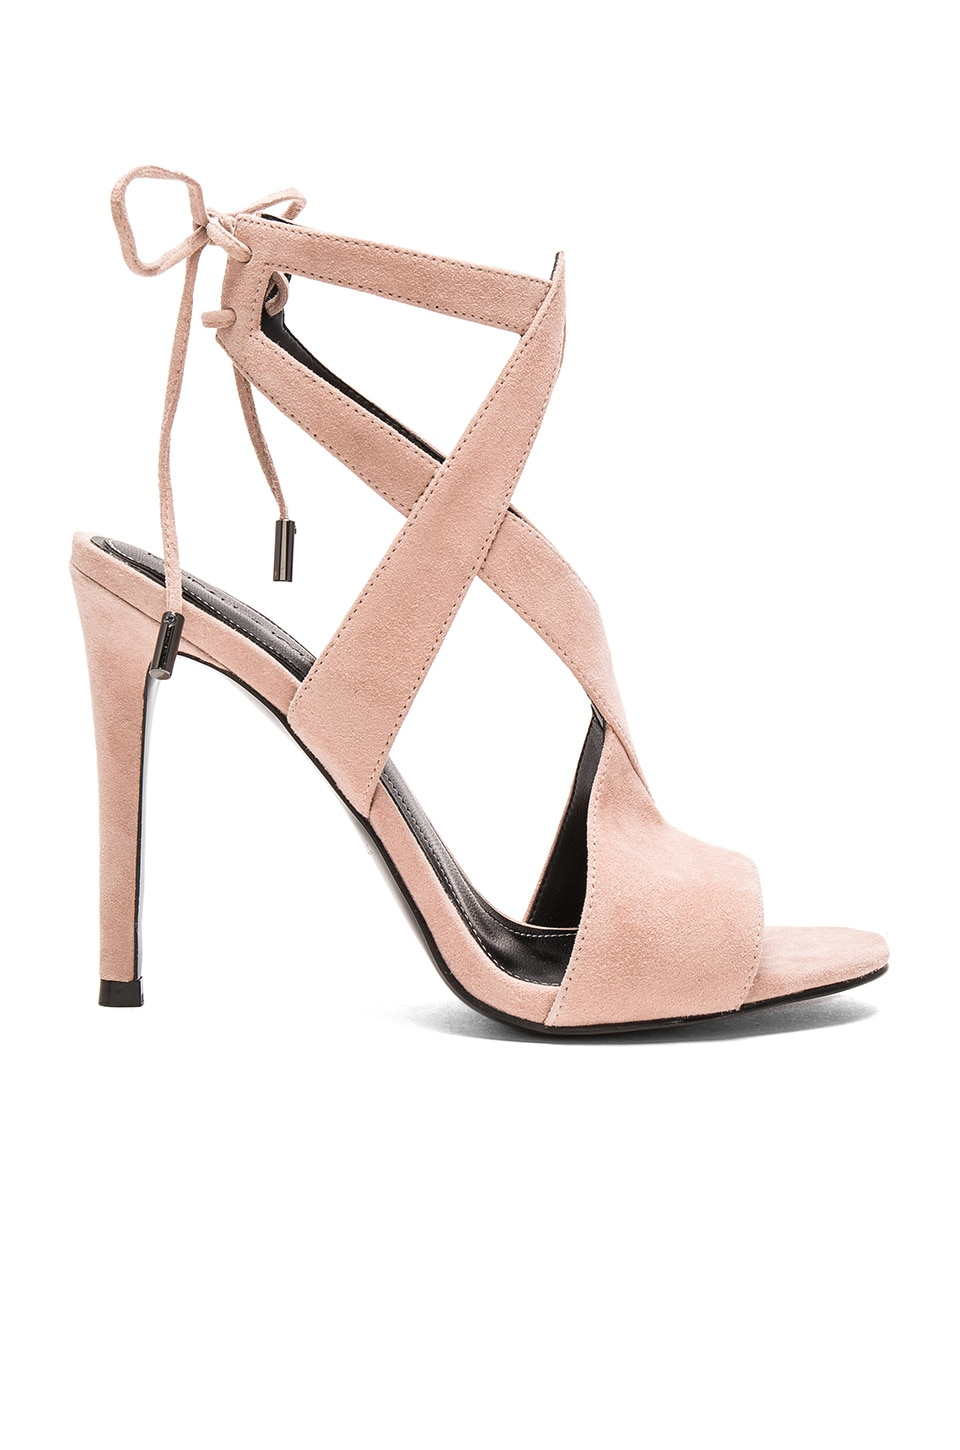 KENDALL + KYLIE Eston Heel in Medium Natural